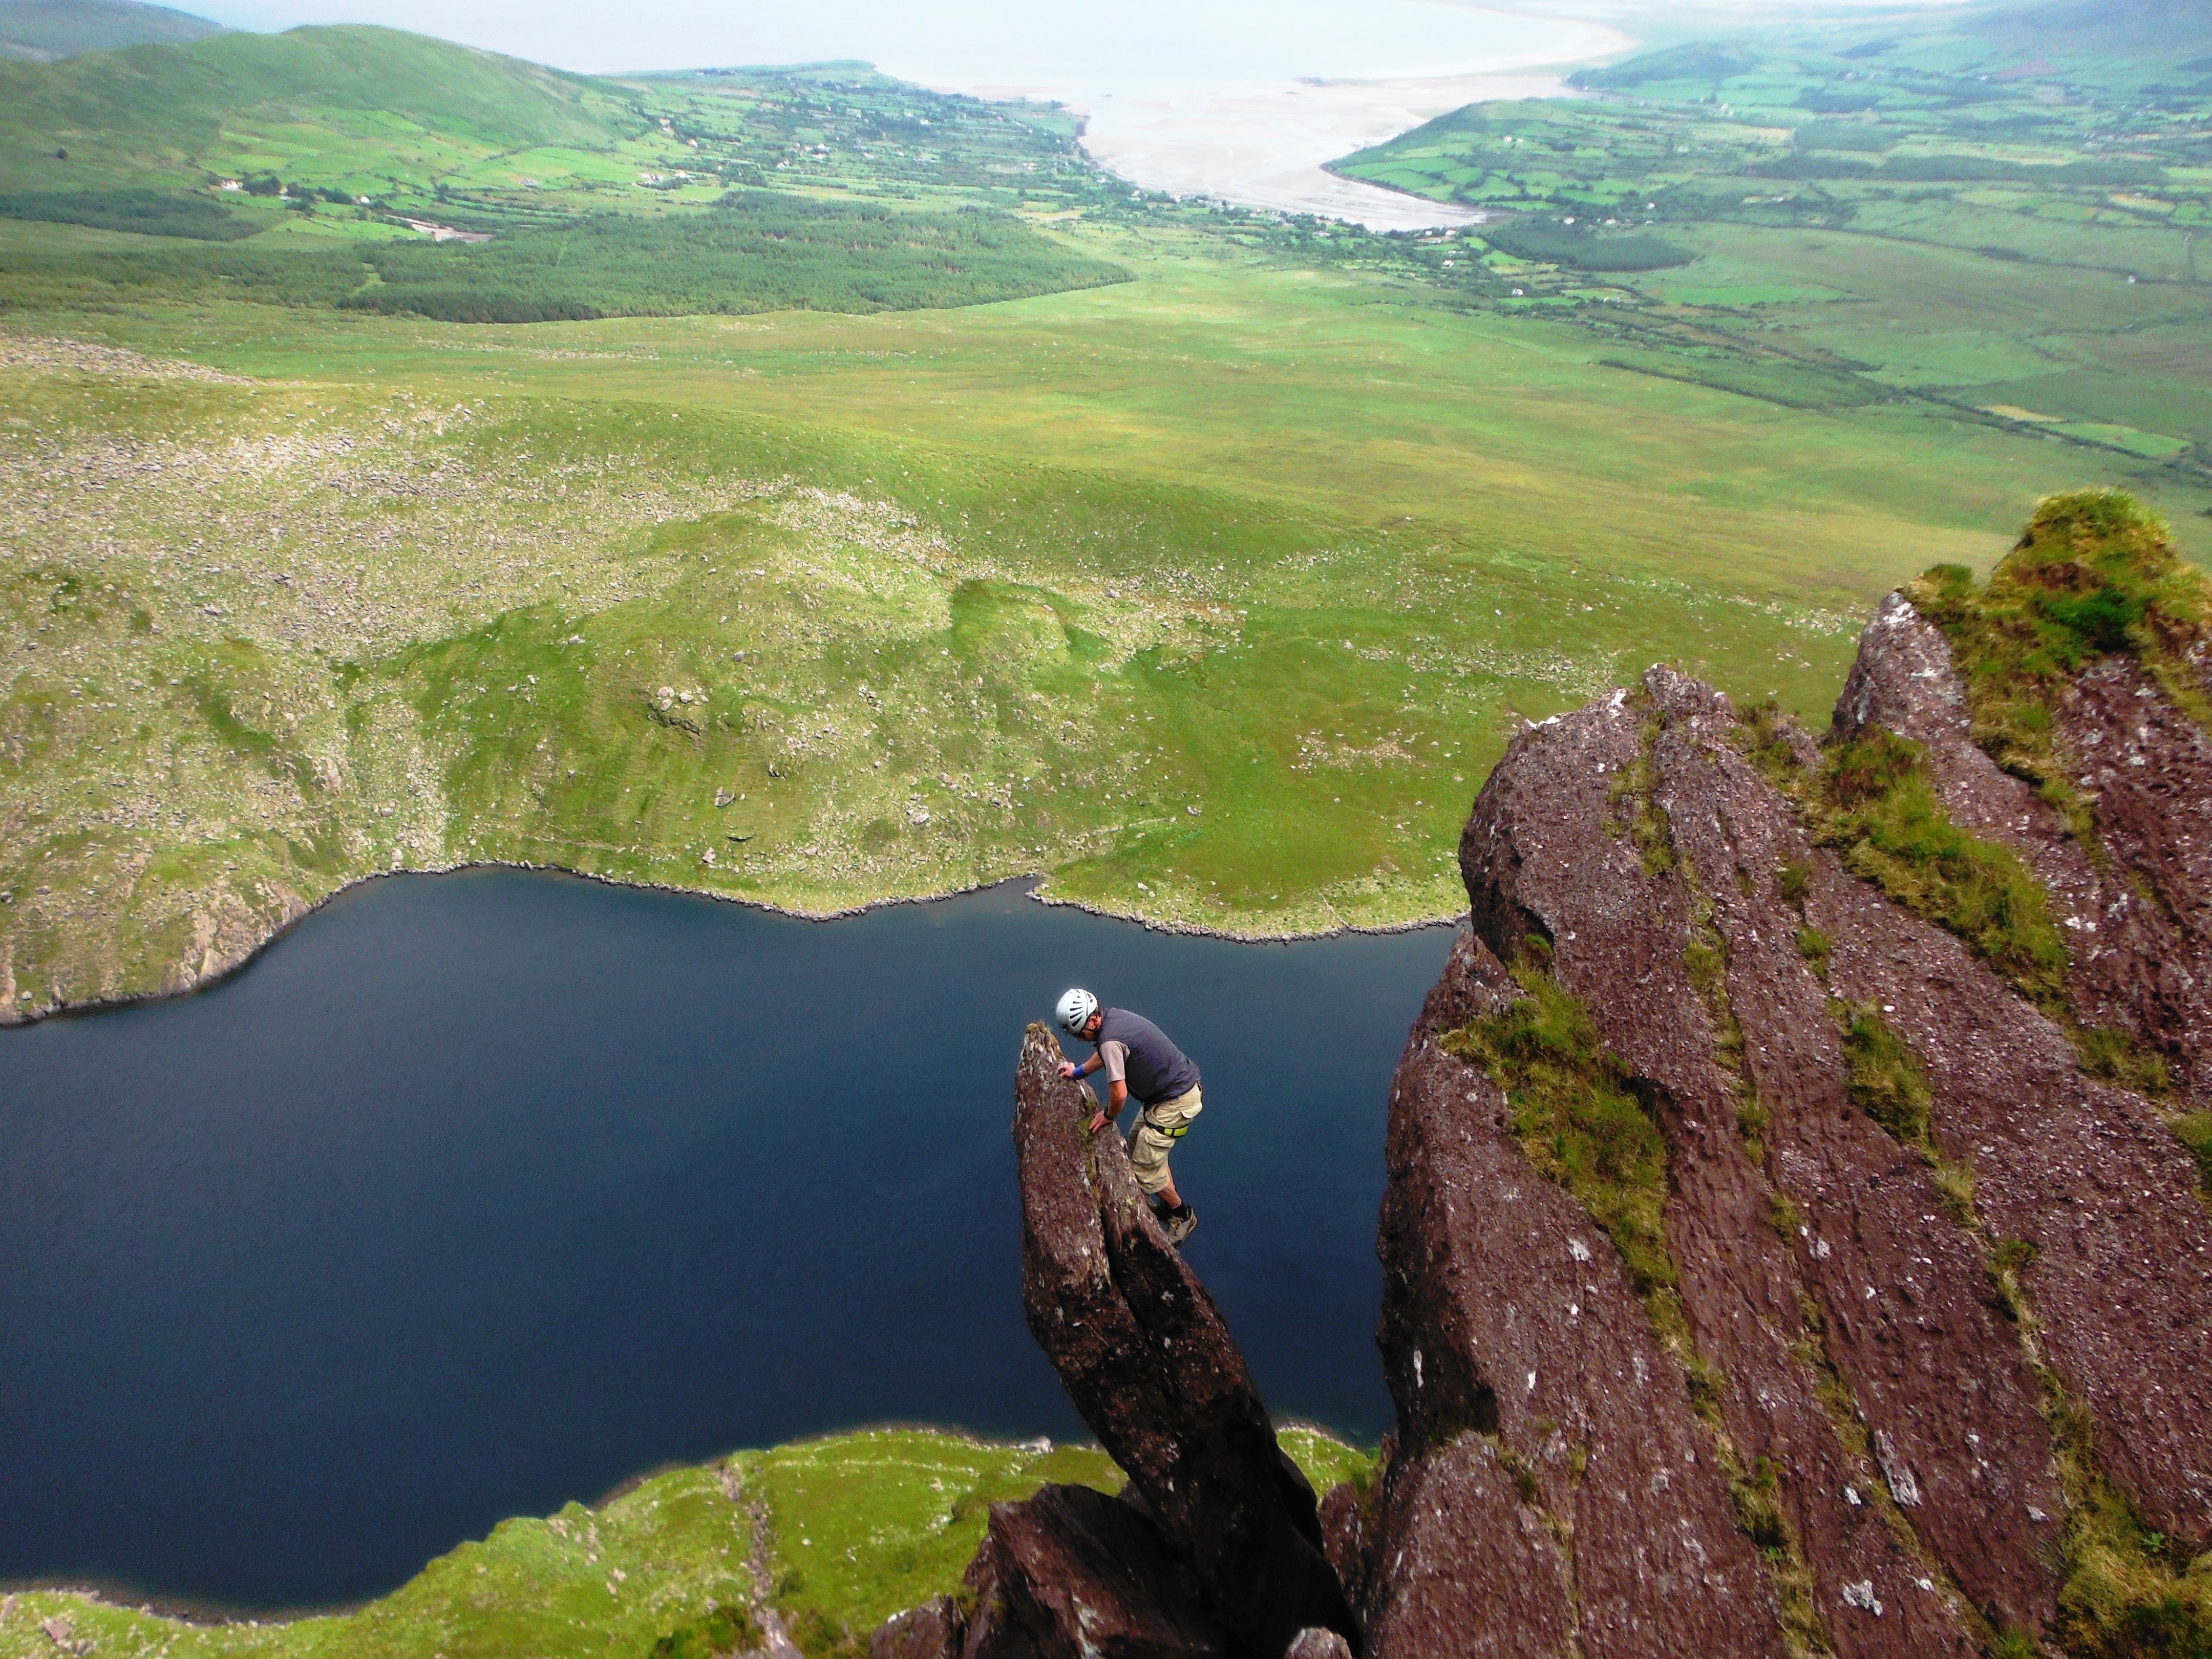 Airy situations while scrambling on the superb East Ridge of Brandon Peak, Dingle Peninsula